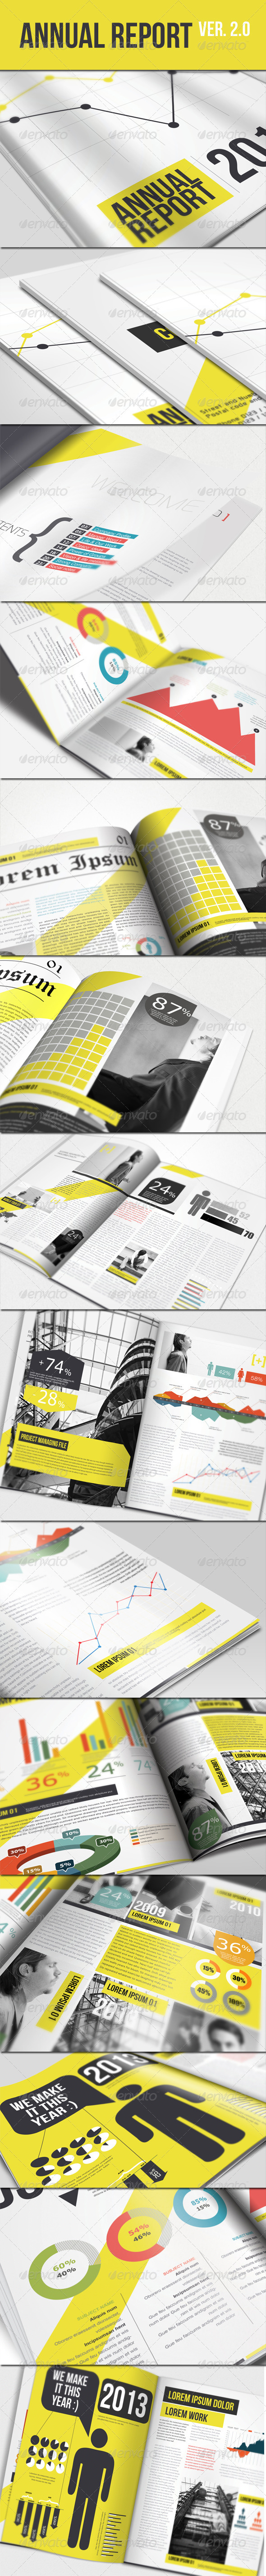 GraphicRiver Annual Report Brochure Ver 2.0 1876686